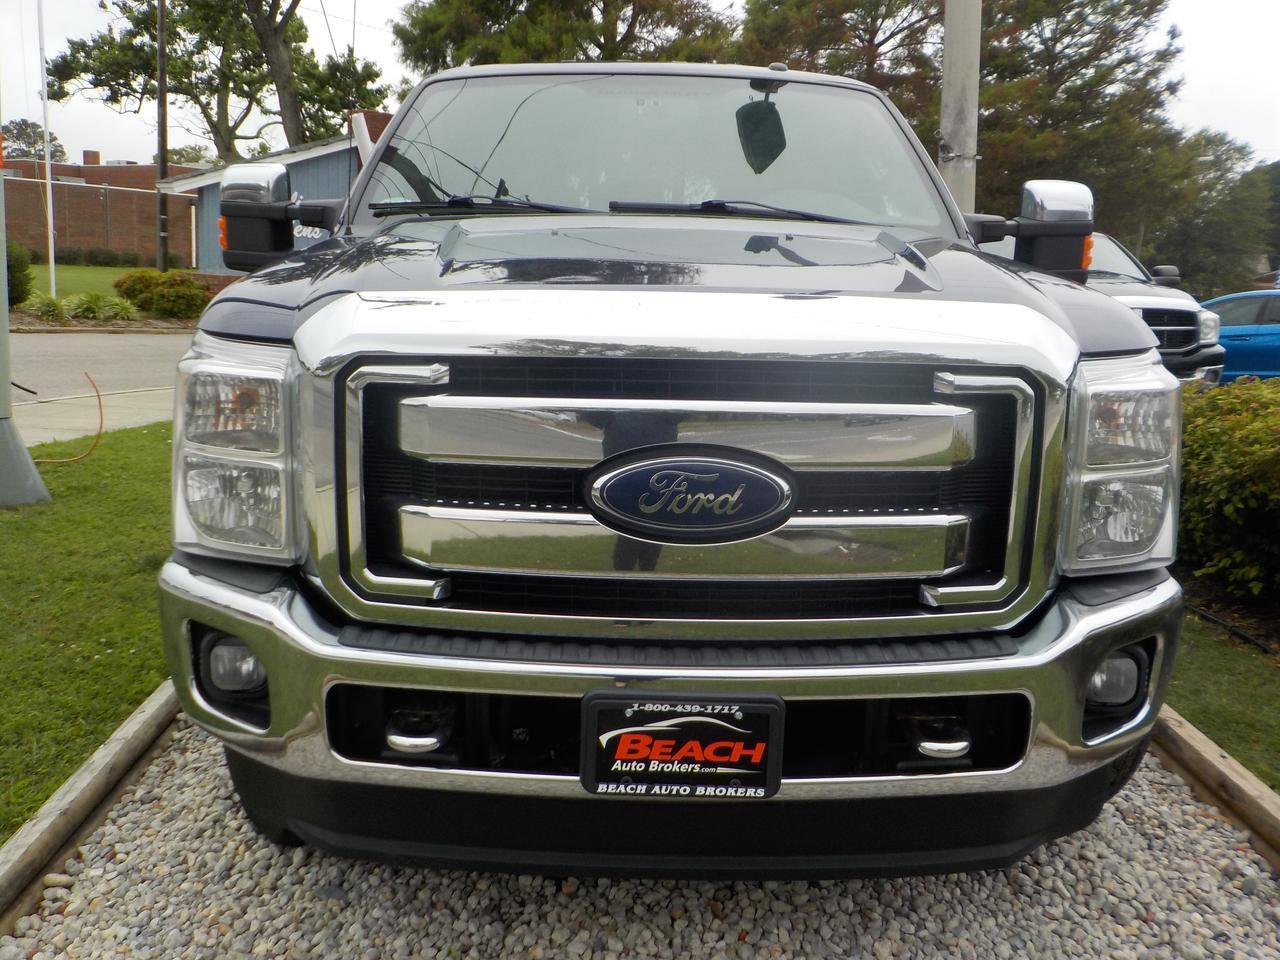 2012 FORD F-250 SUPER DUTY LARIAT CREW CAB 4X4, WARRANTY, LEATHER, HEATED/COOLED SEATS, AUX/USB PORT, SIRIUS RADIO! Norfolk VA